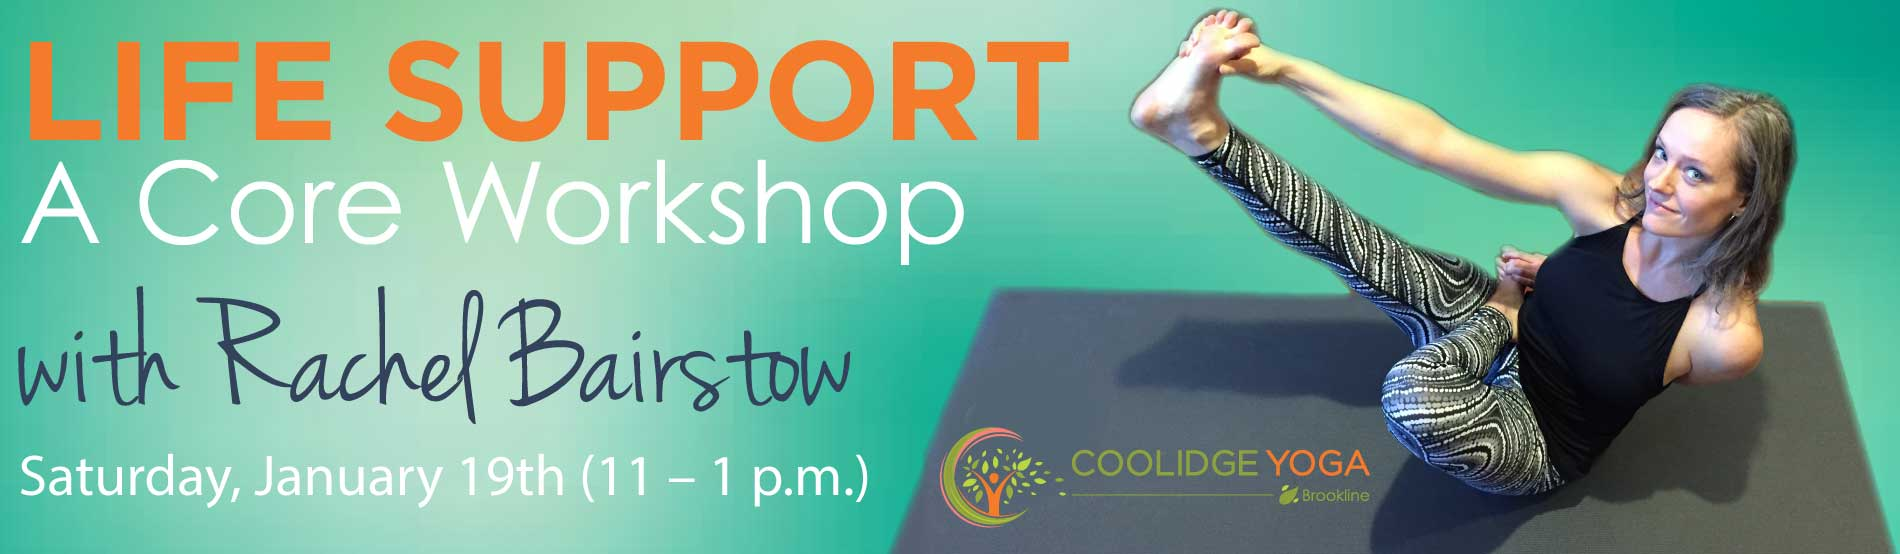 Life Support -  A Core Workshop with Rachel Bairstow at Coolidge Yoga